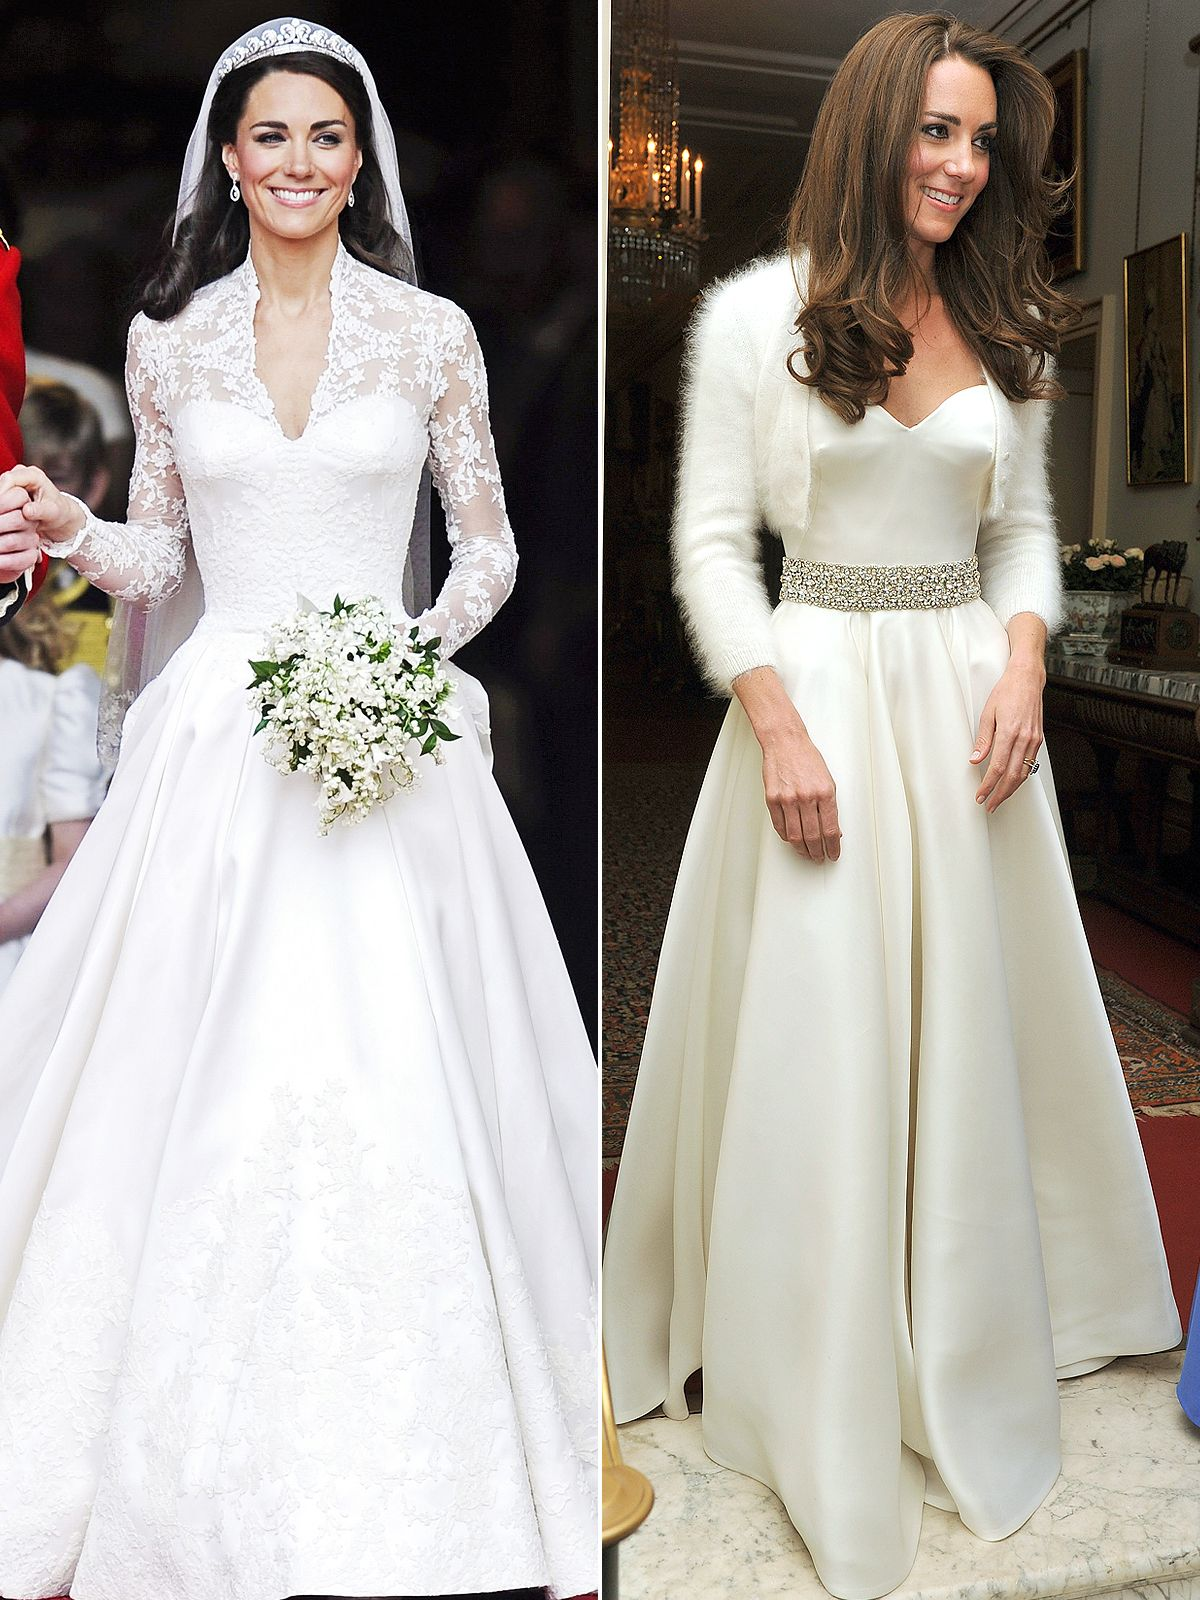 What Wedding Dress Will Pippa Middleton Wear